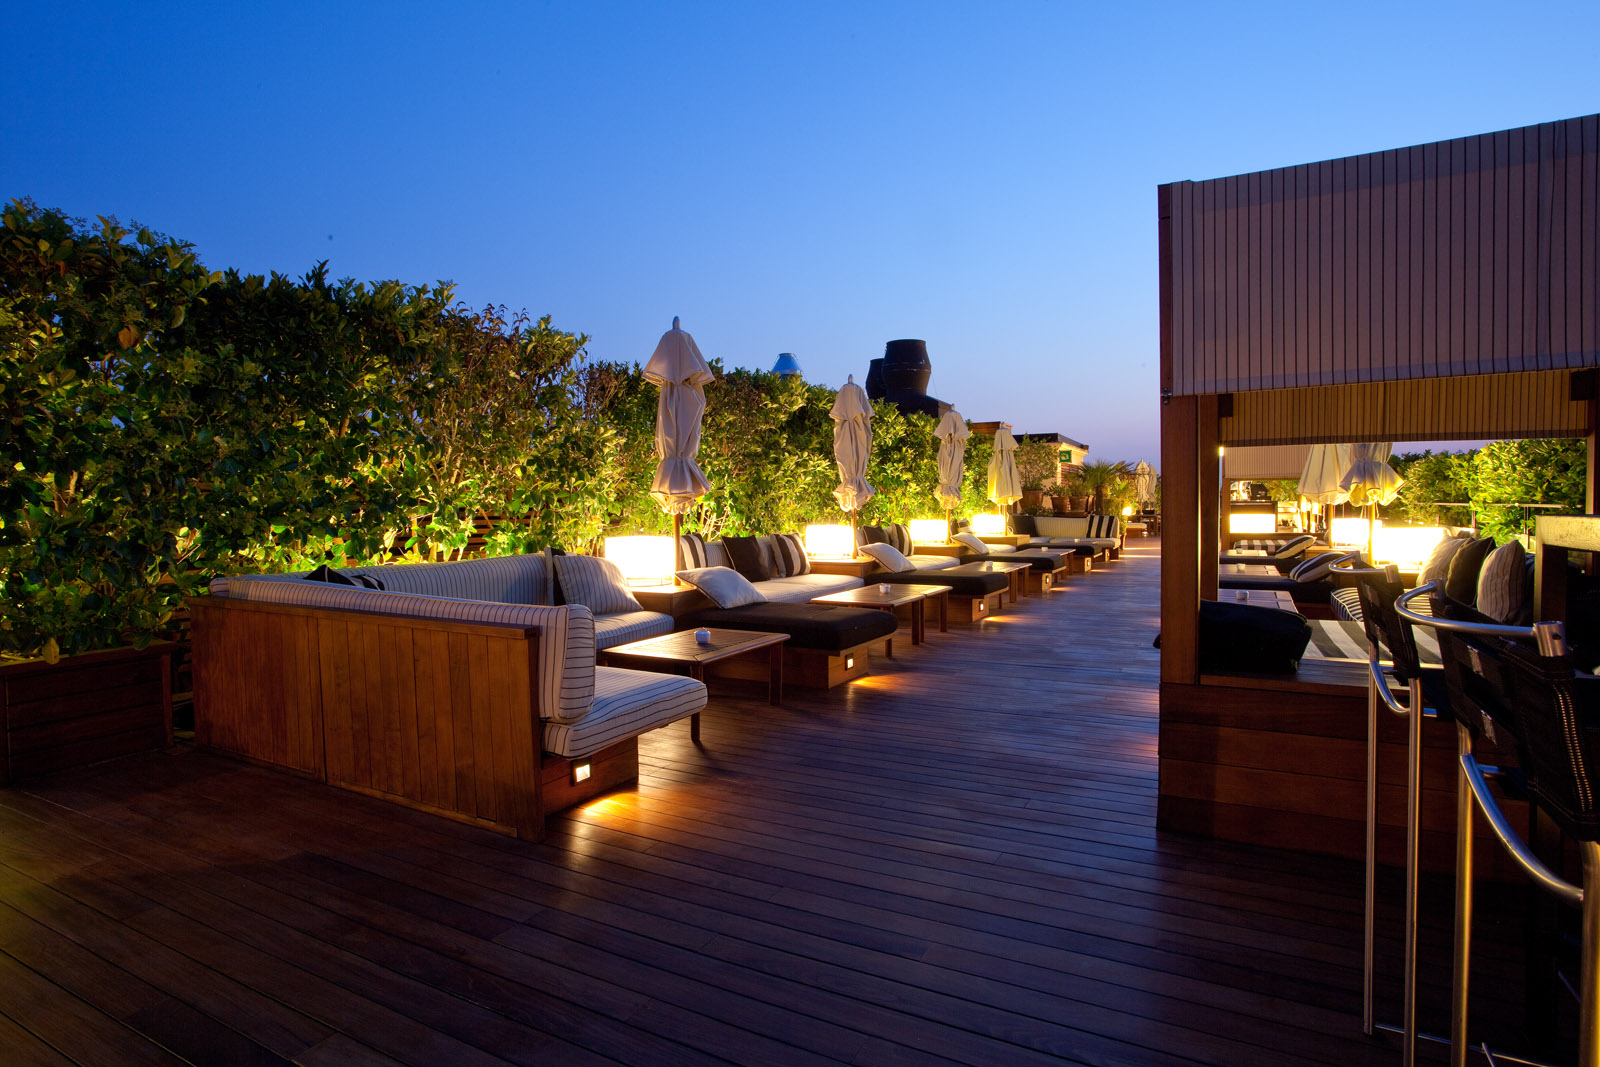 5 best rooftop bars in Barcelona | Linguaschools Barcelona ...